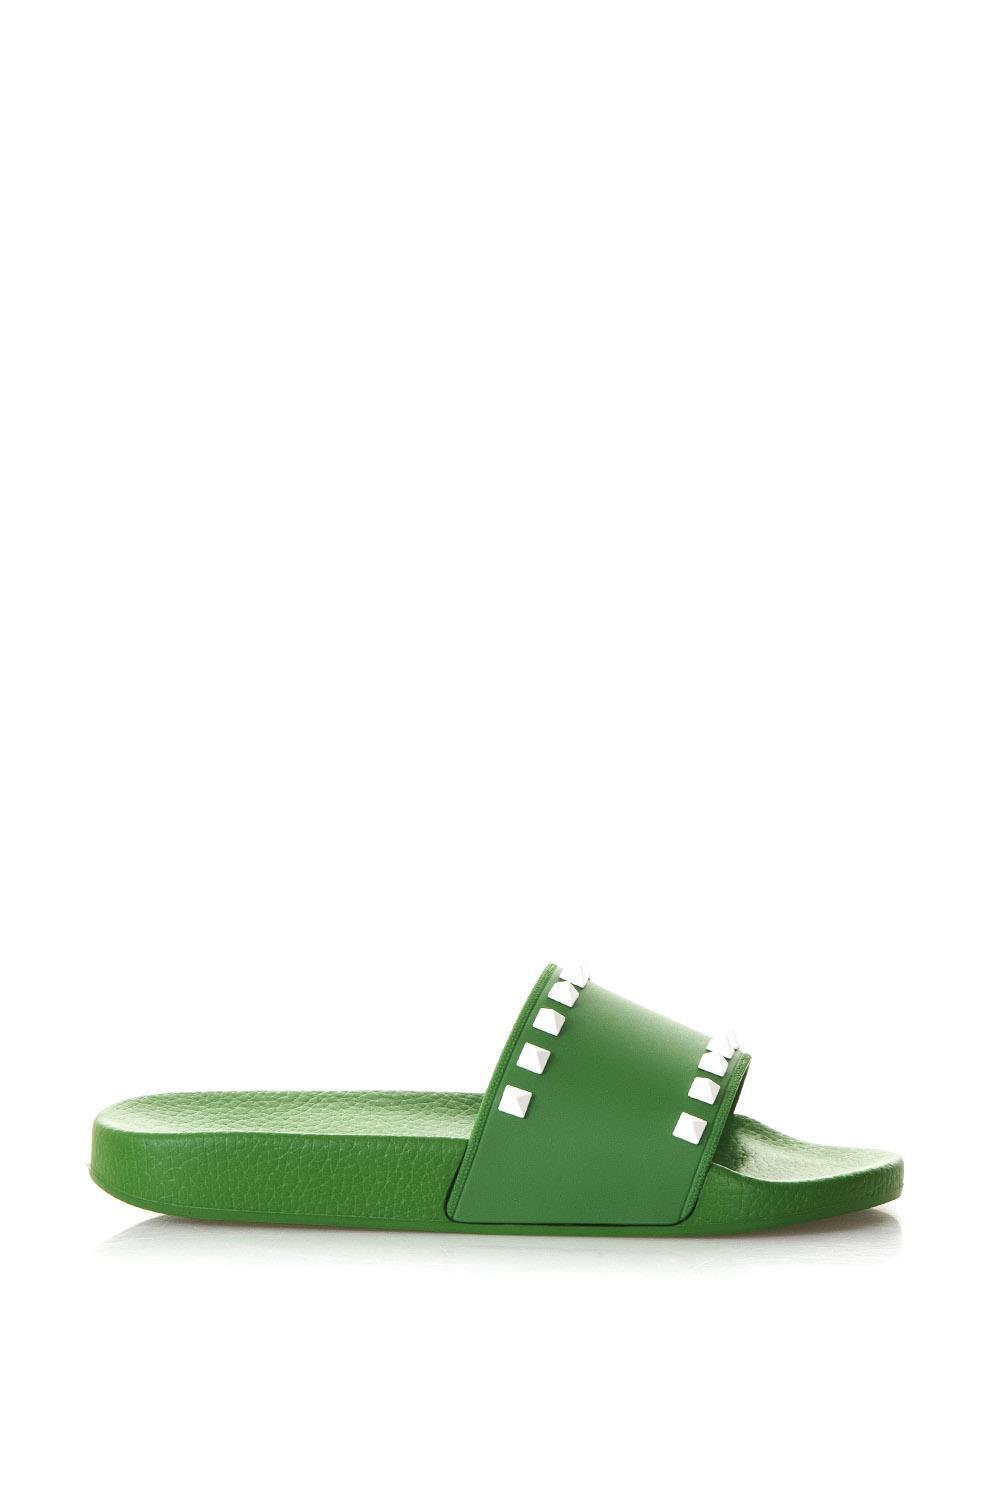 b8a2194830579 Lyst - Valentino Garavani Rockstud Slides in Green - Save 19%